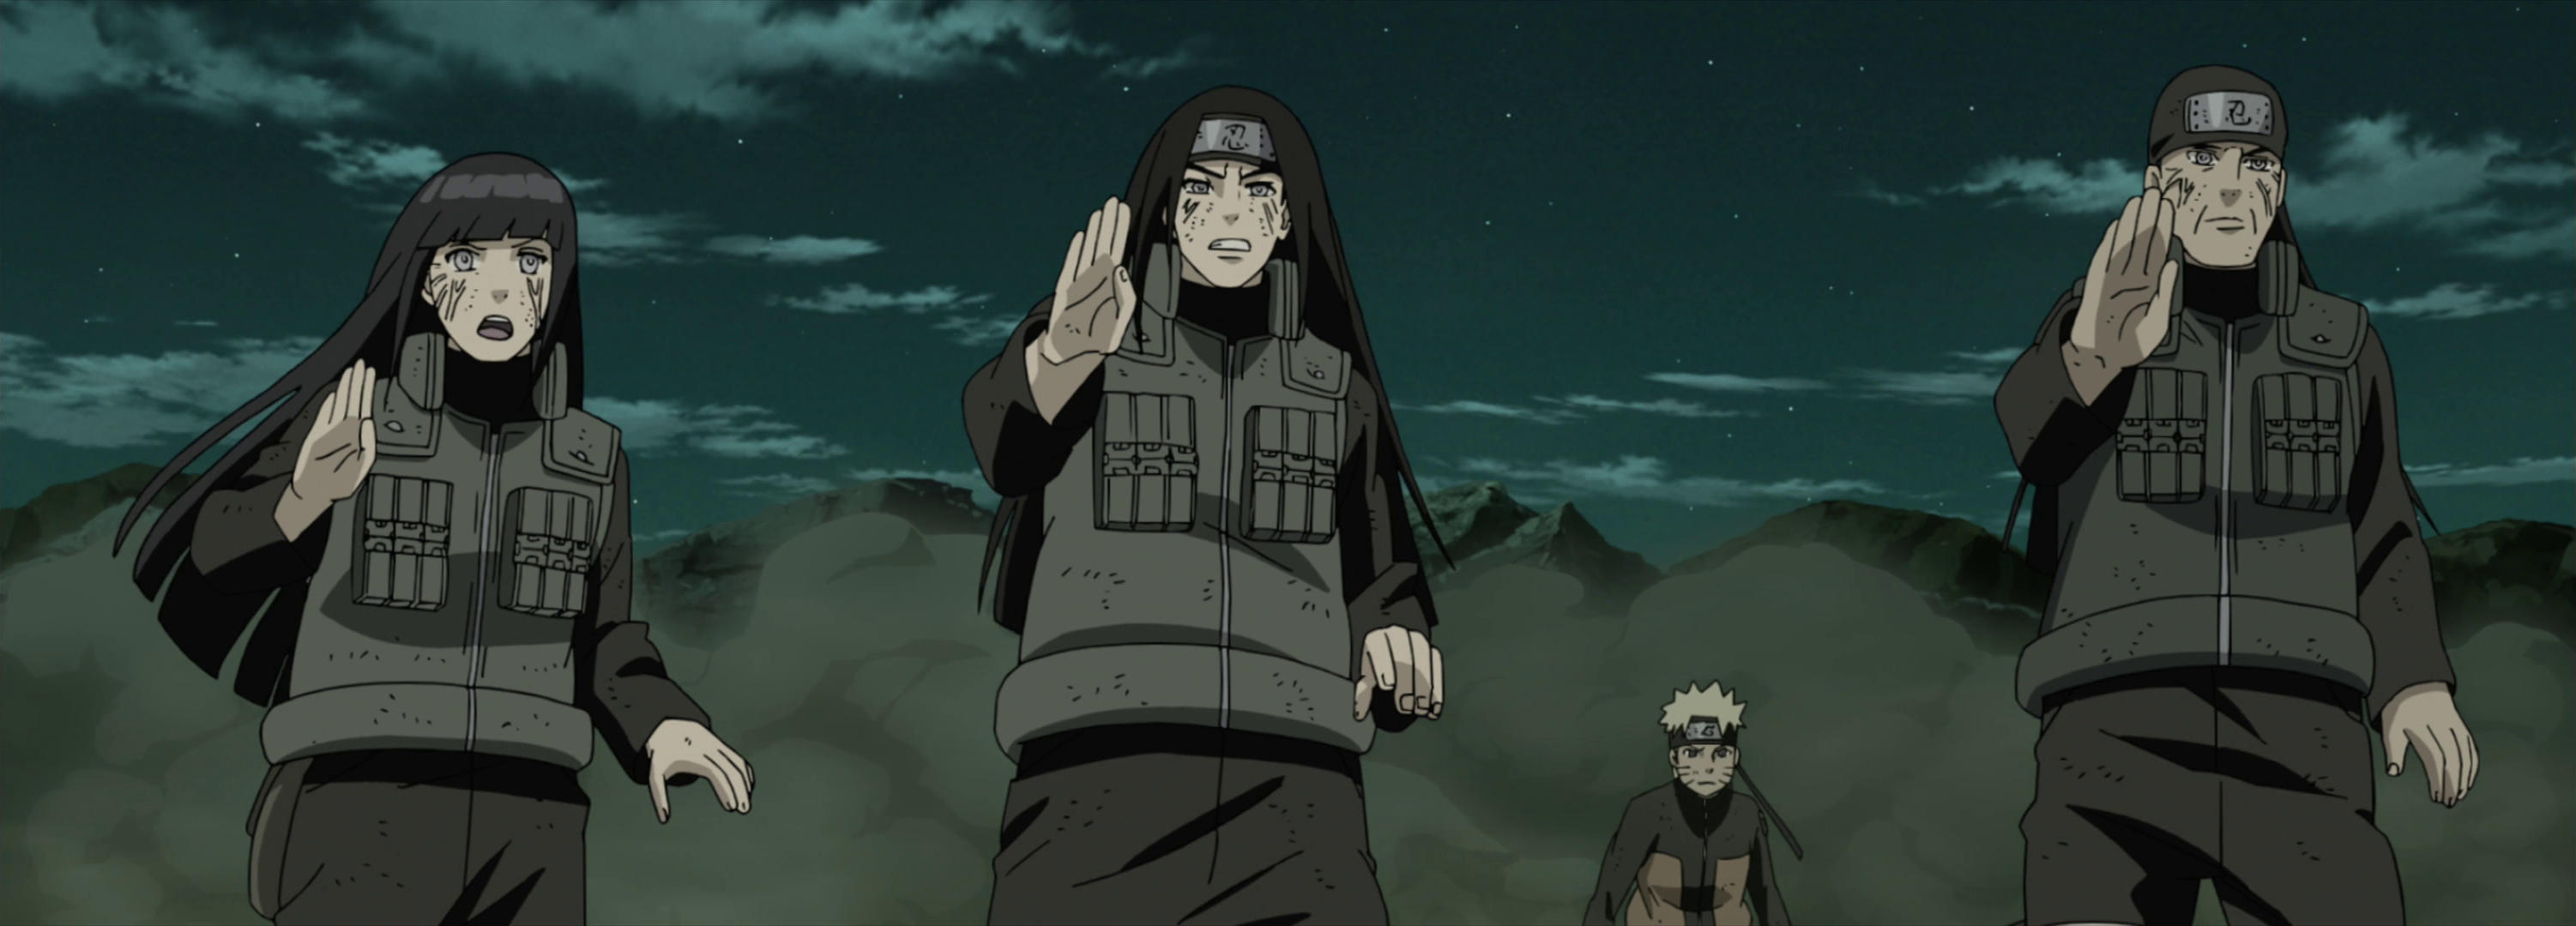 Neji Hyūga | Narutopedia | FANDOM powered by Wikia